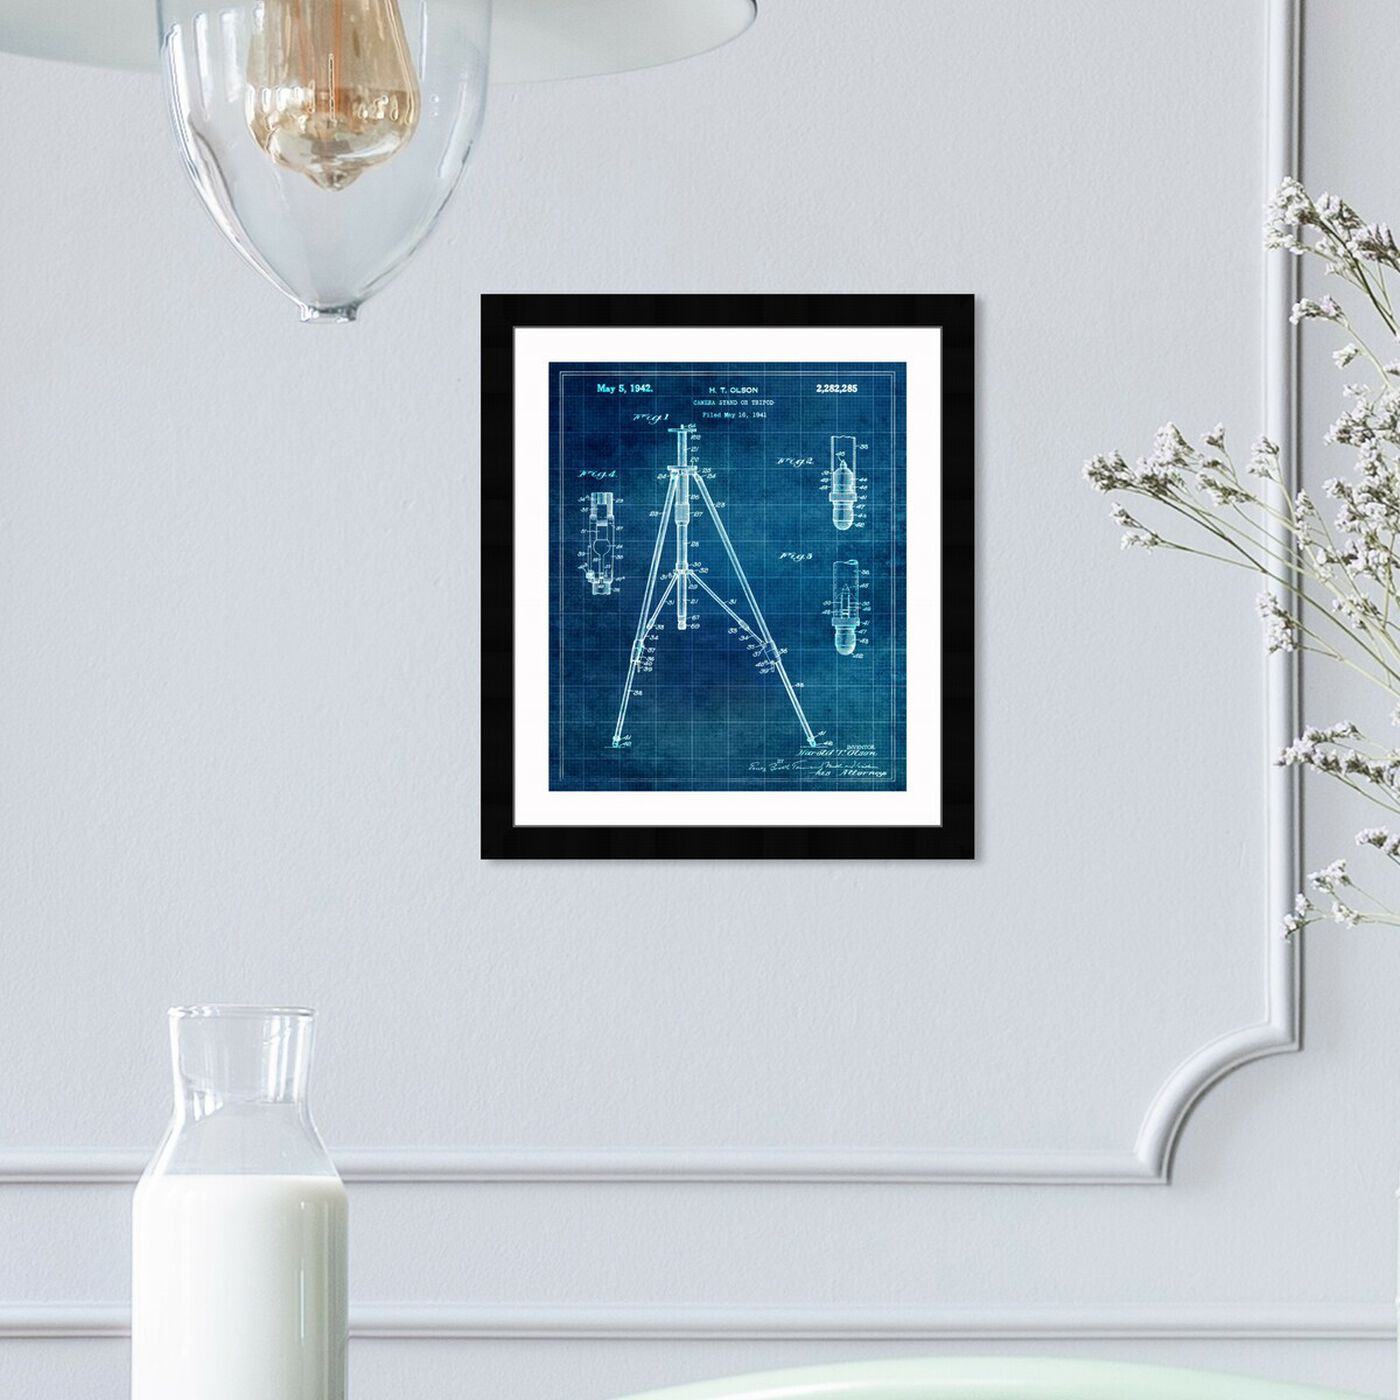 Hanging view of Tripod 1942 I featuring entertainment and hobbies and photography art.